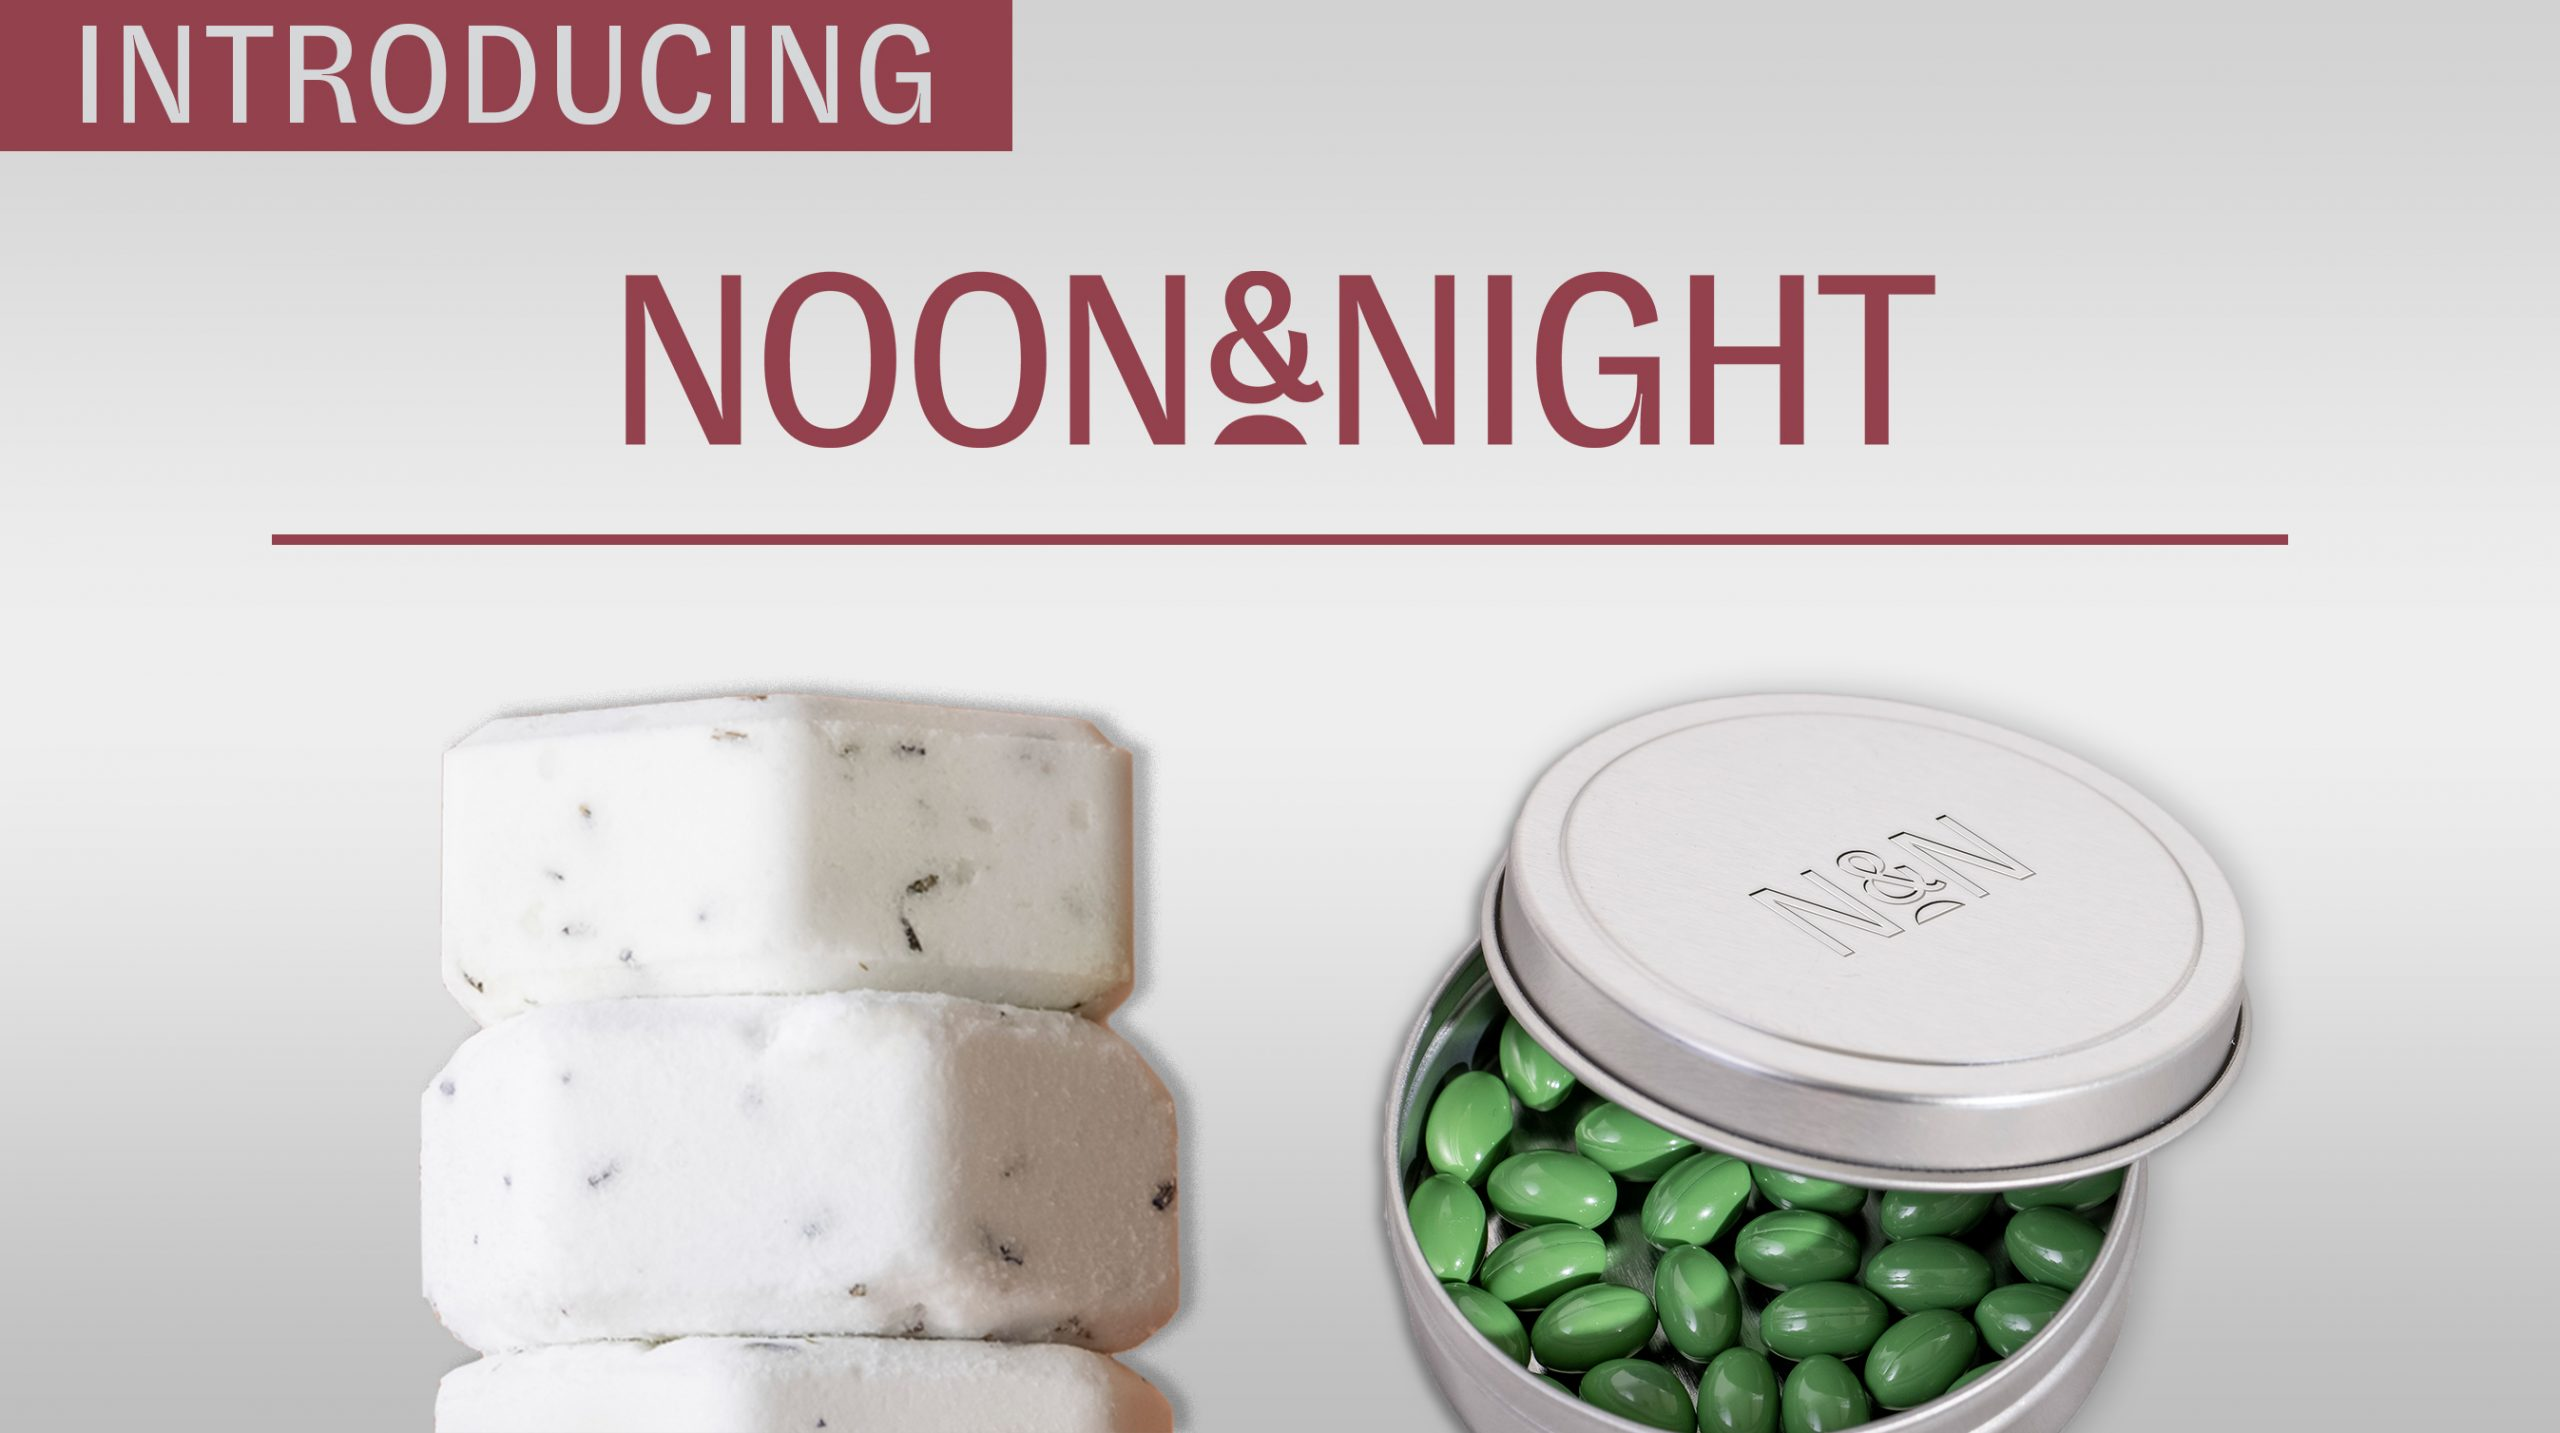 Aleafia Health Introduces Wellness Brand Noon & Night Featuring Omega CBD Soft Gels